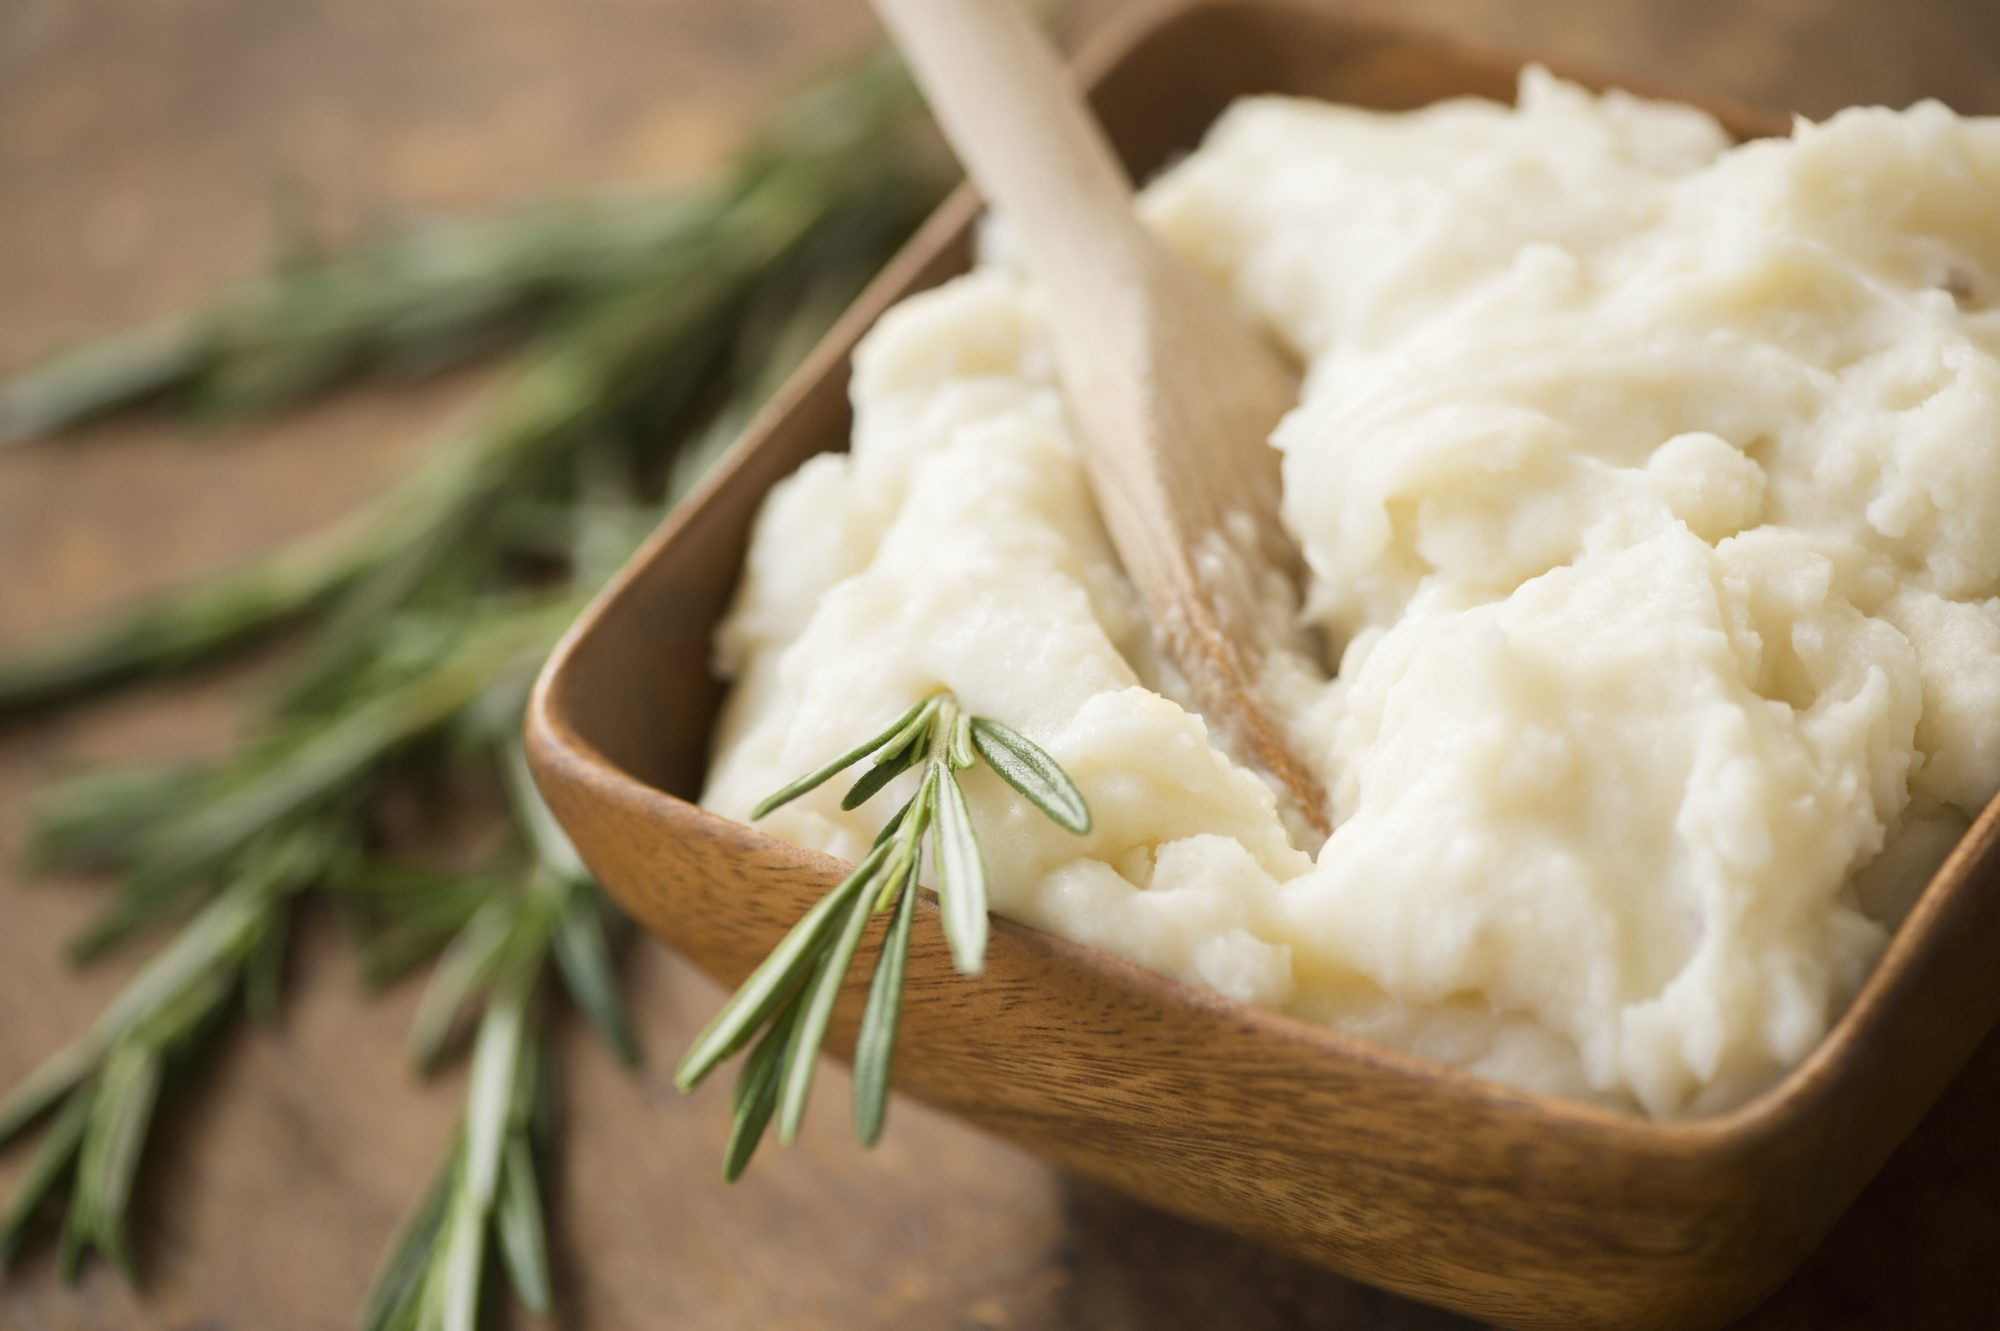 mashed-potatoes-rosemary-554371795.jpg